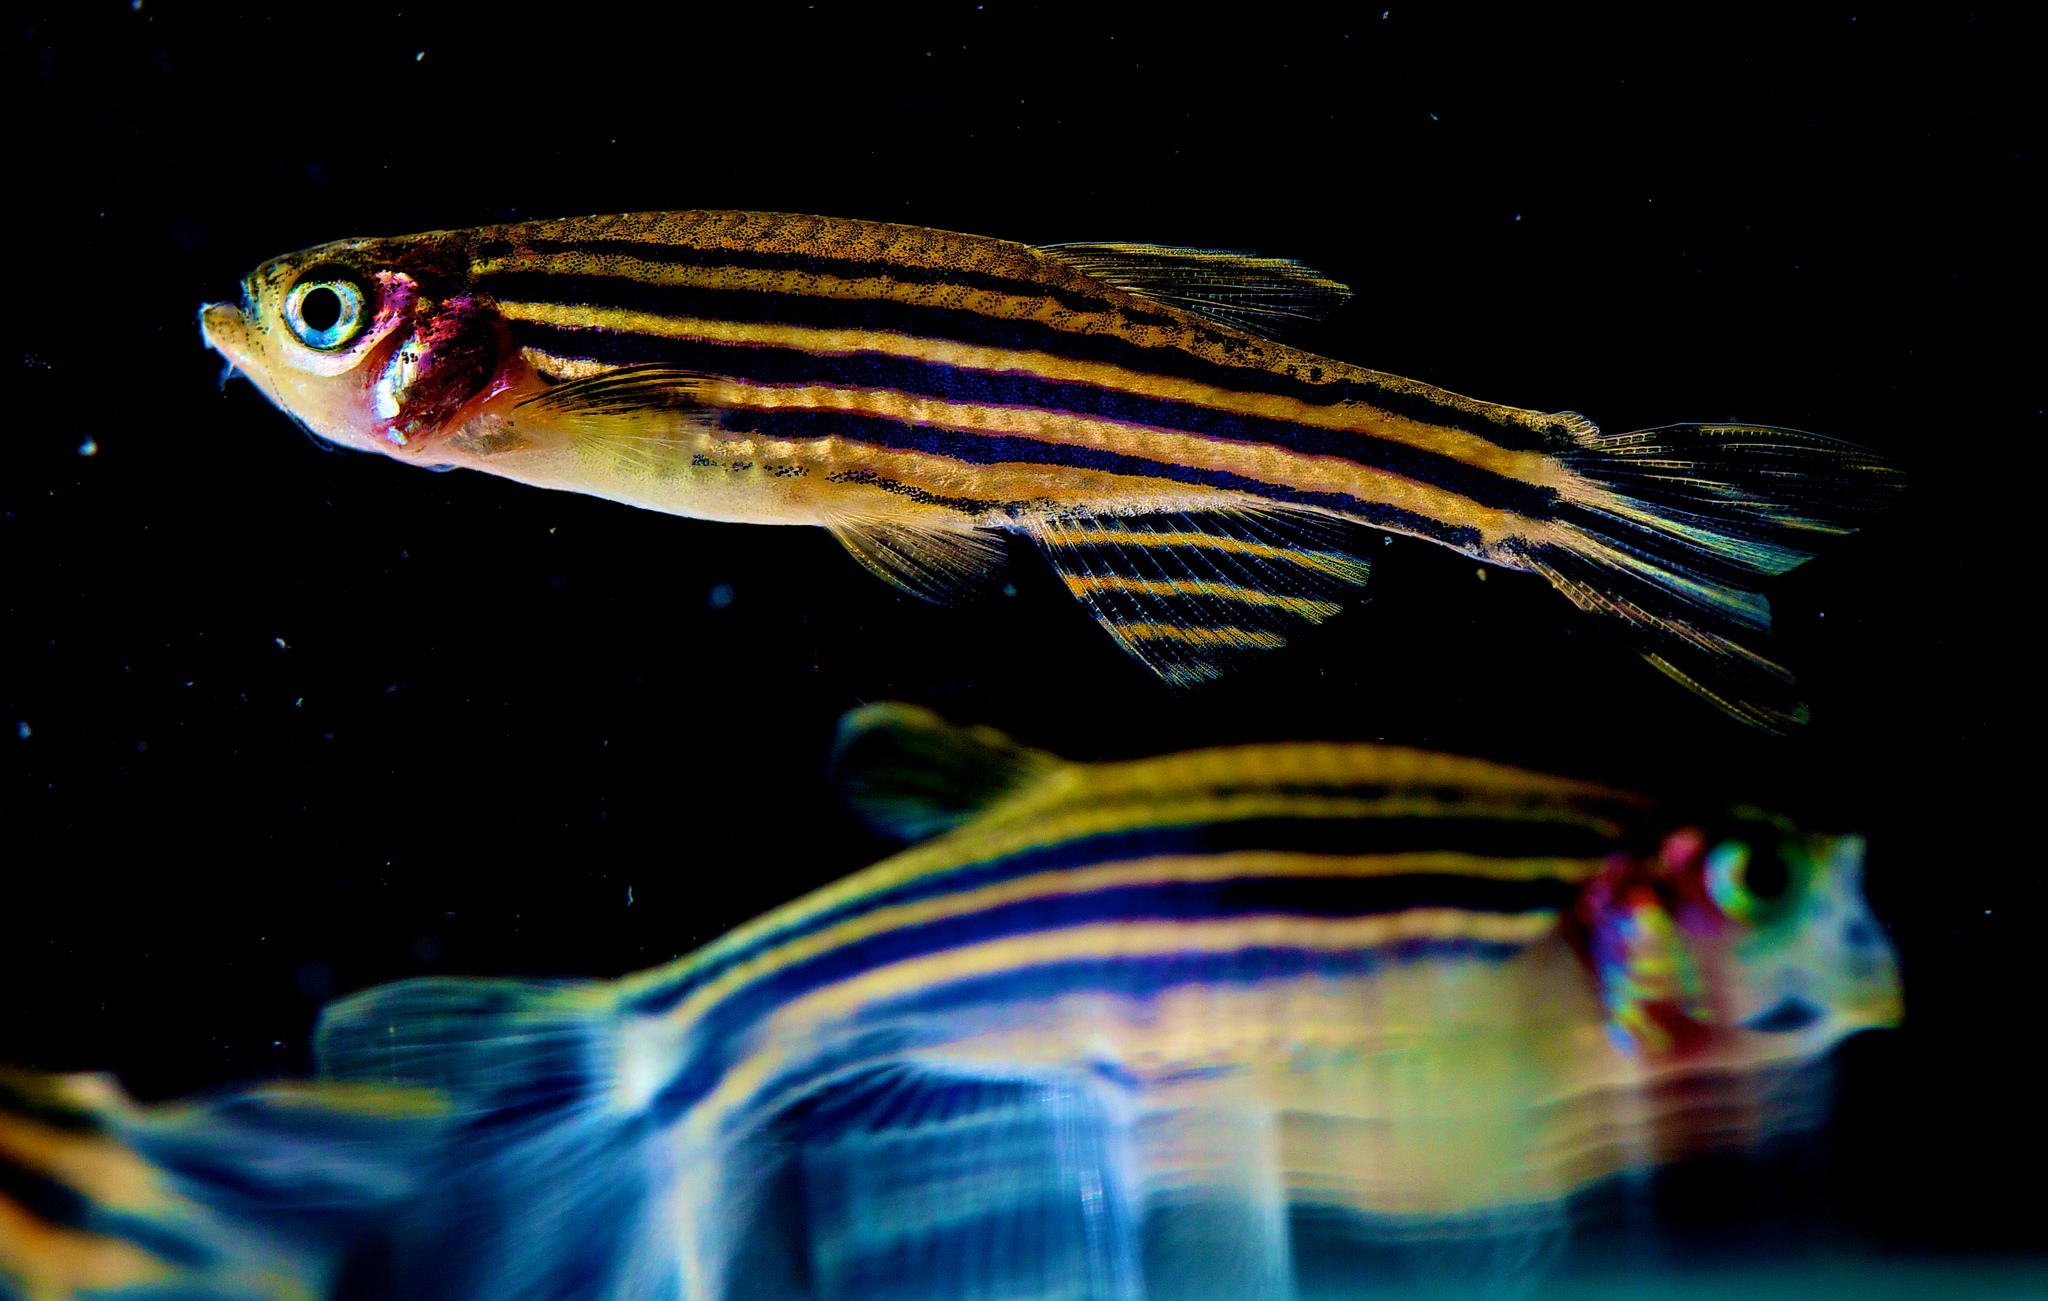 Zebrafish are known for their black and gold stripes.- Image Credit:  NICHD/flickr , CC BY